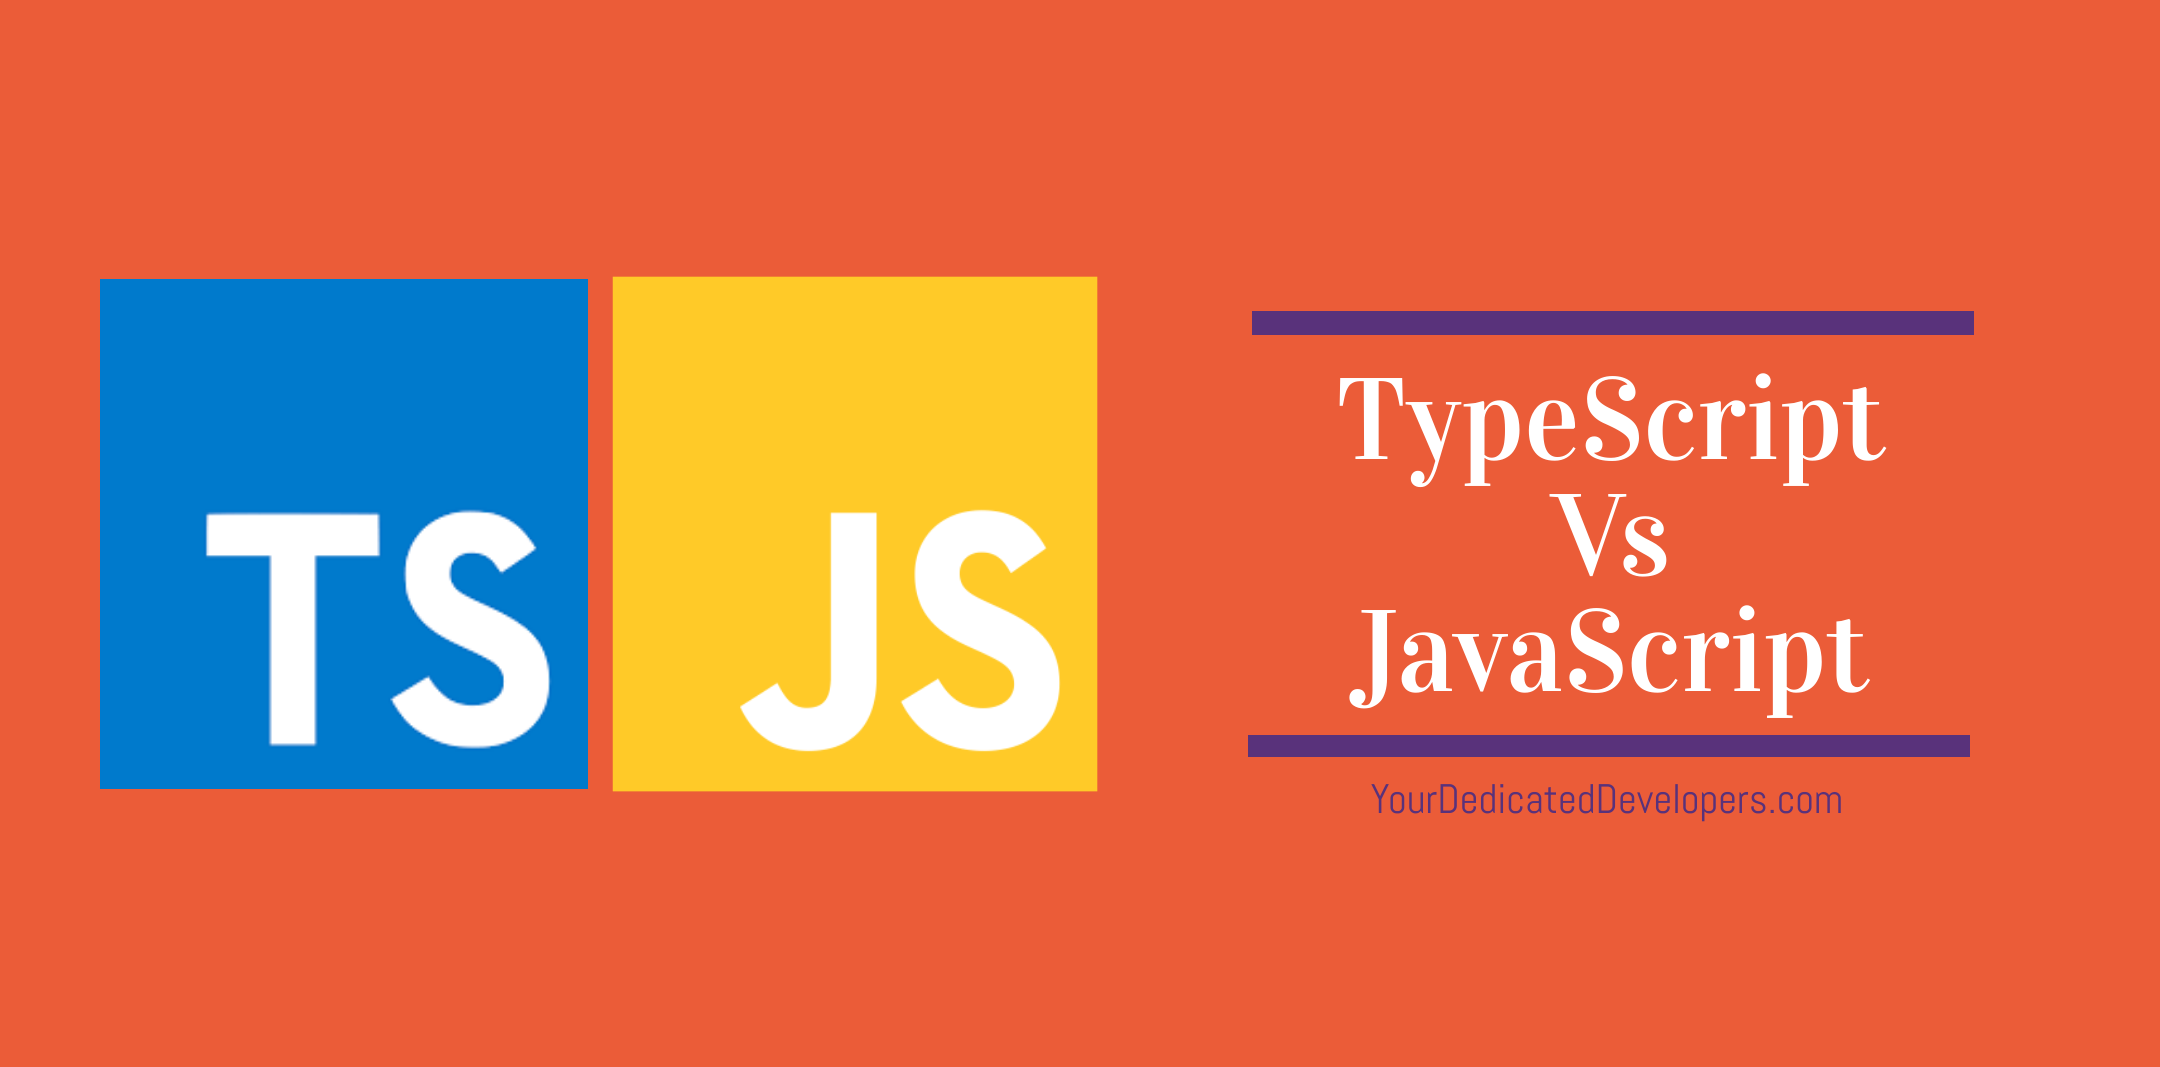 Javascript vs Typescript. This post helps in understanding the differences and various advantages of both programming languages.